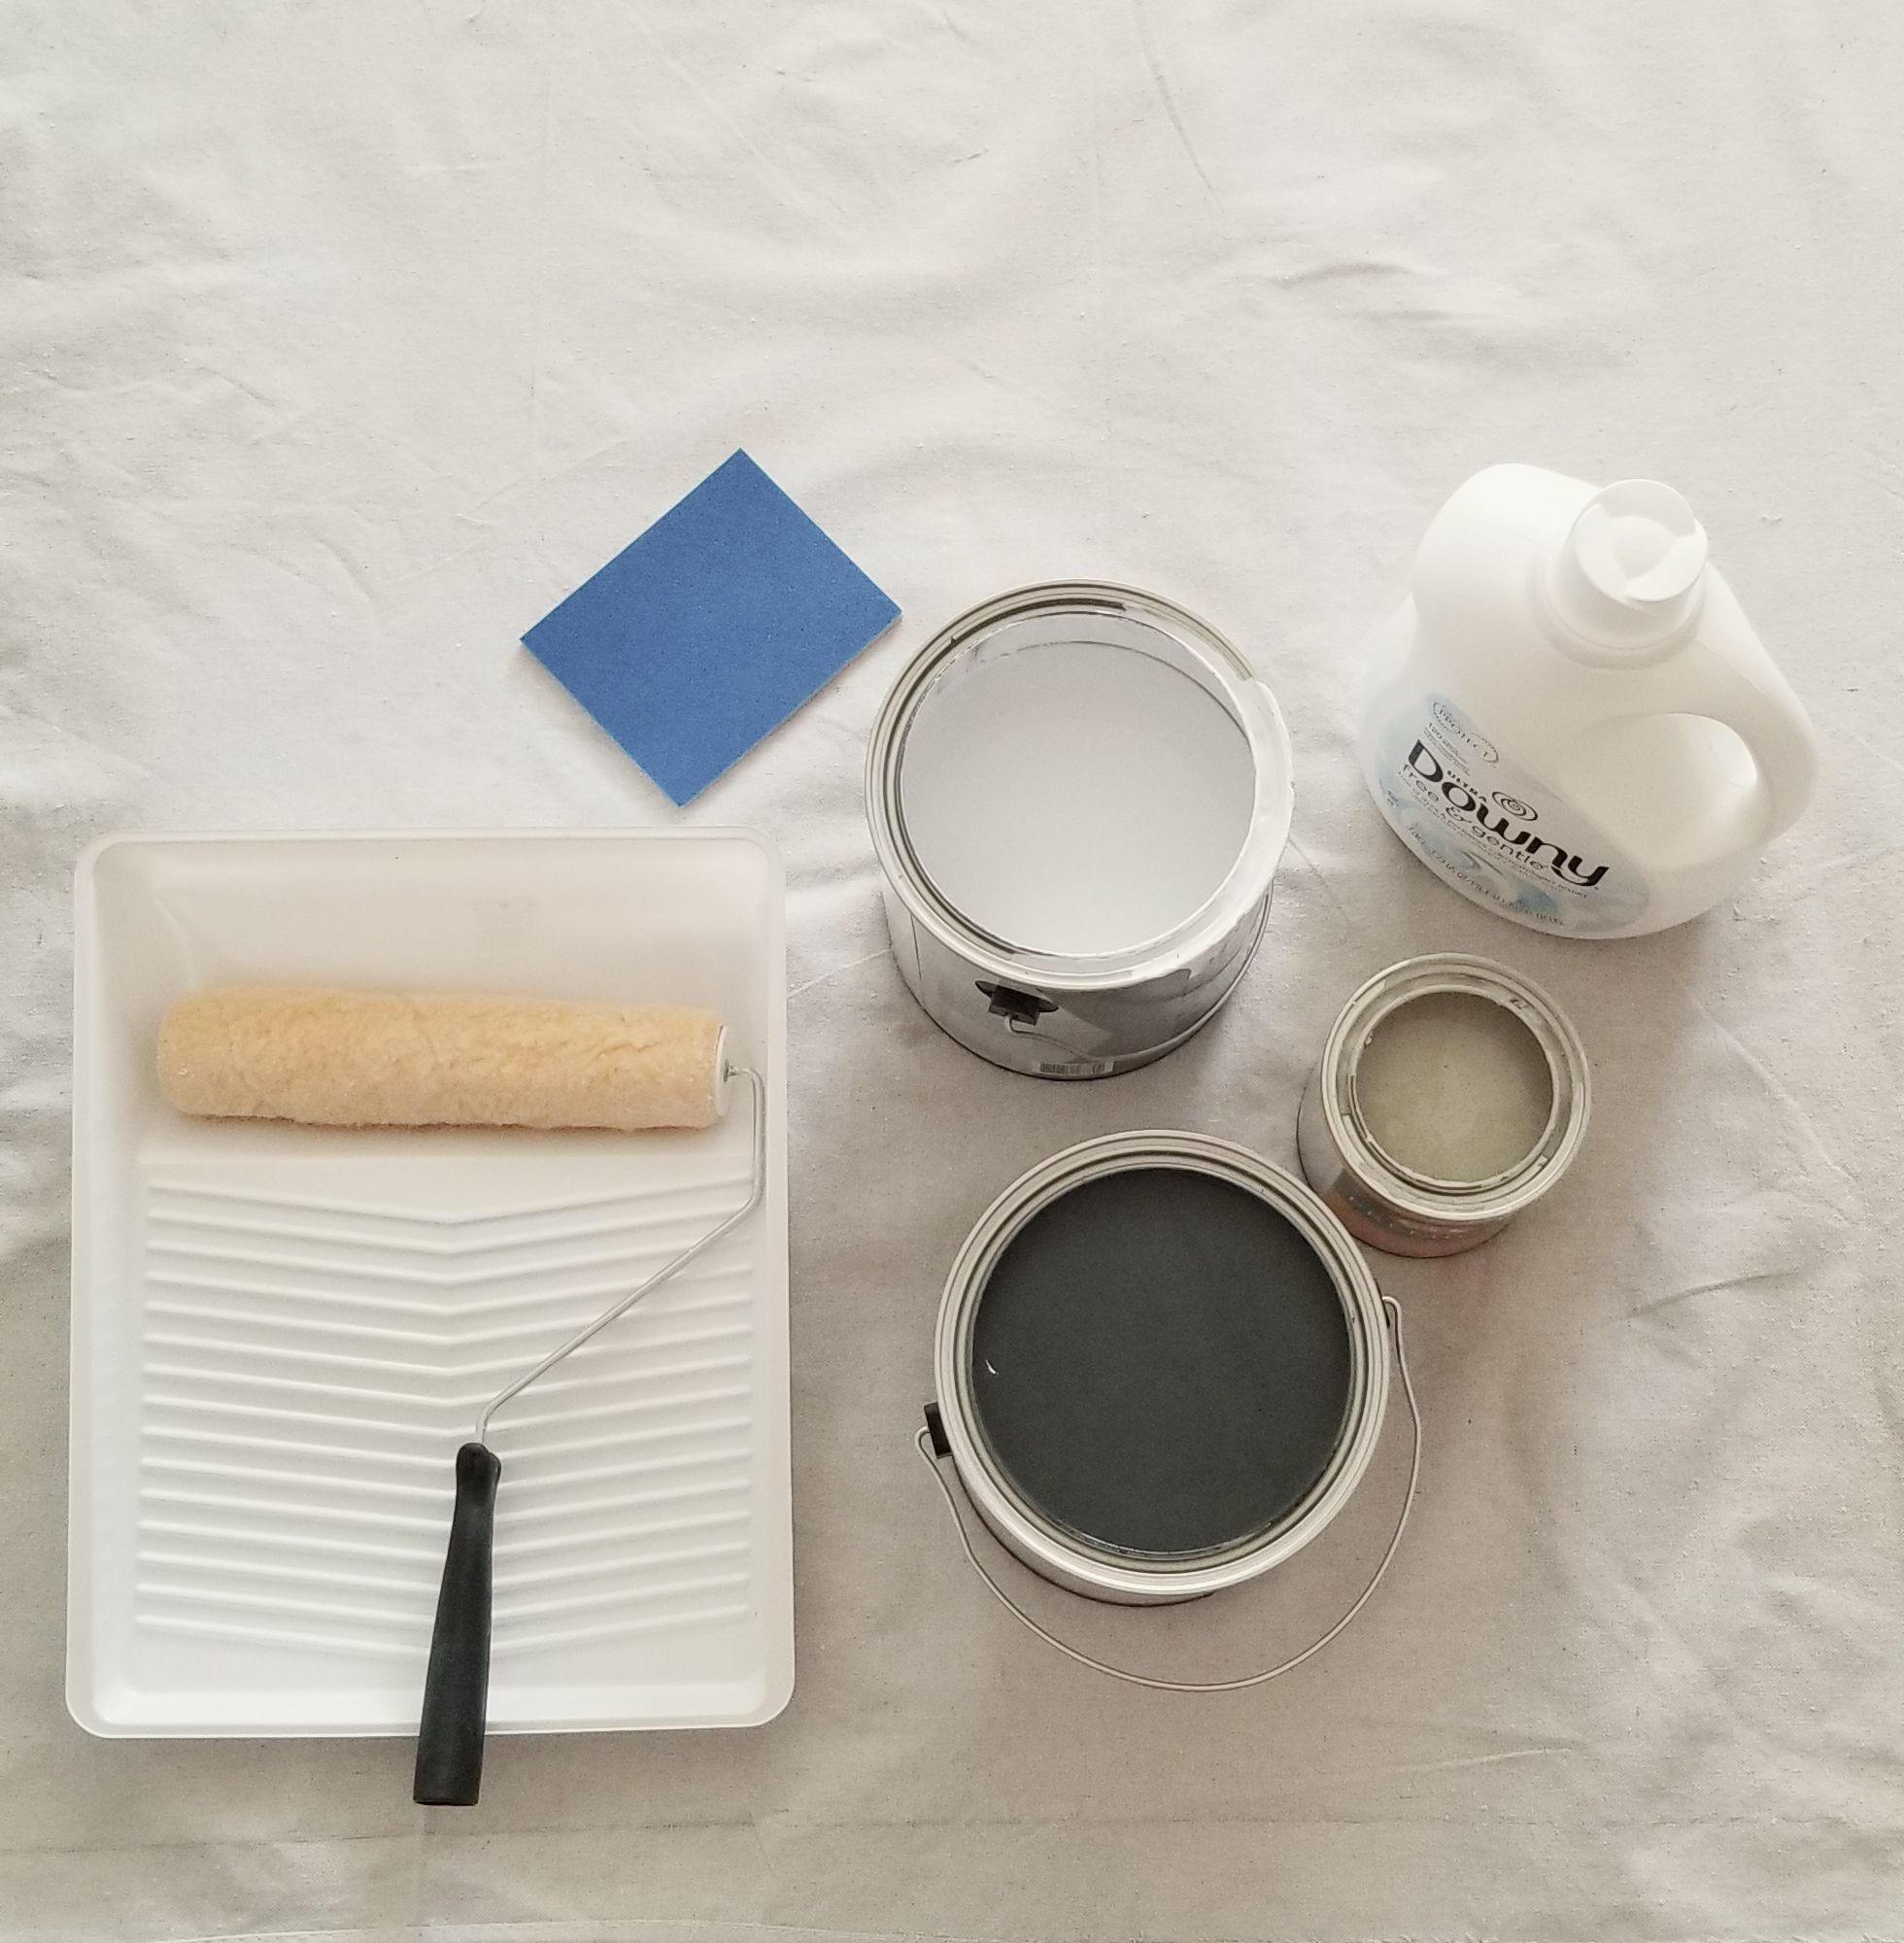 DIY dark backdrop paint supplies.jpg